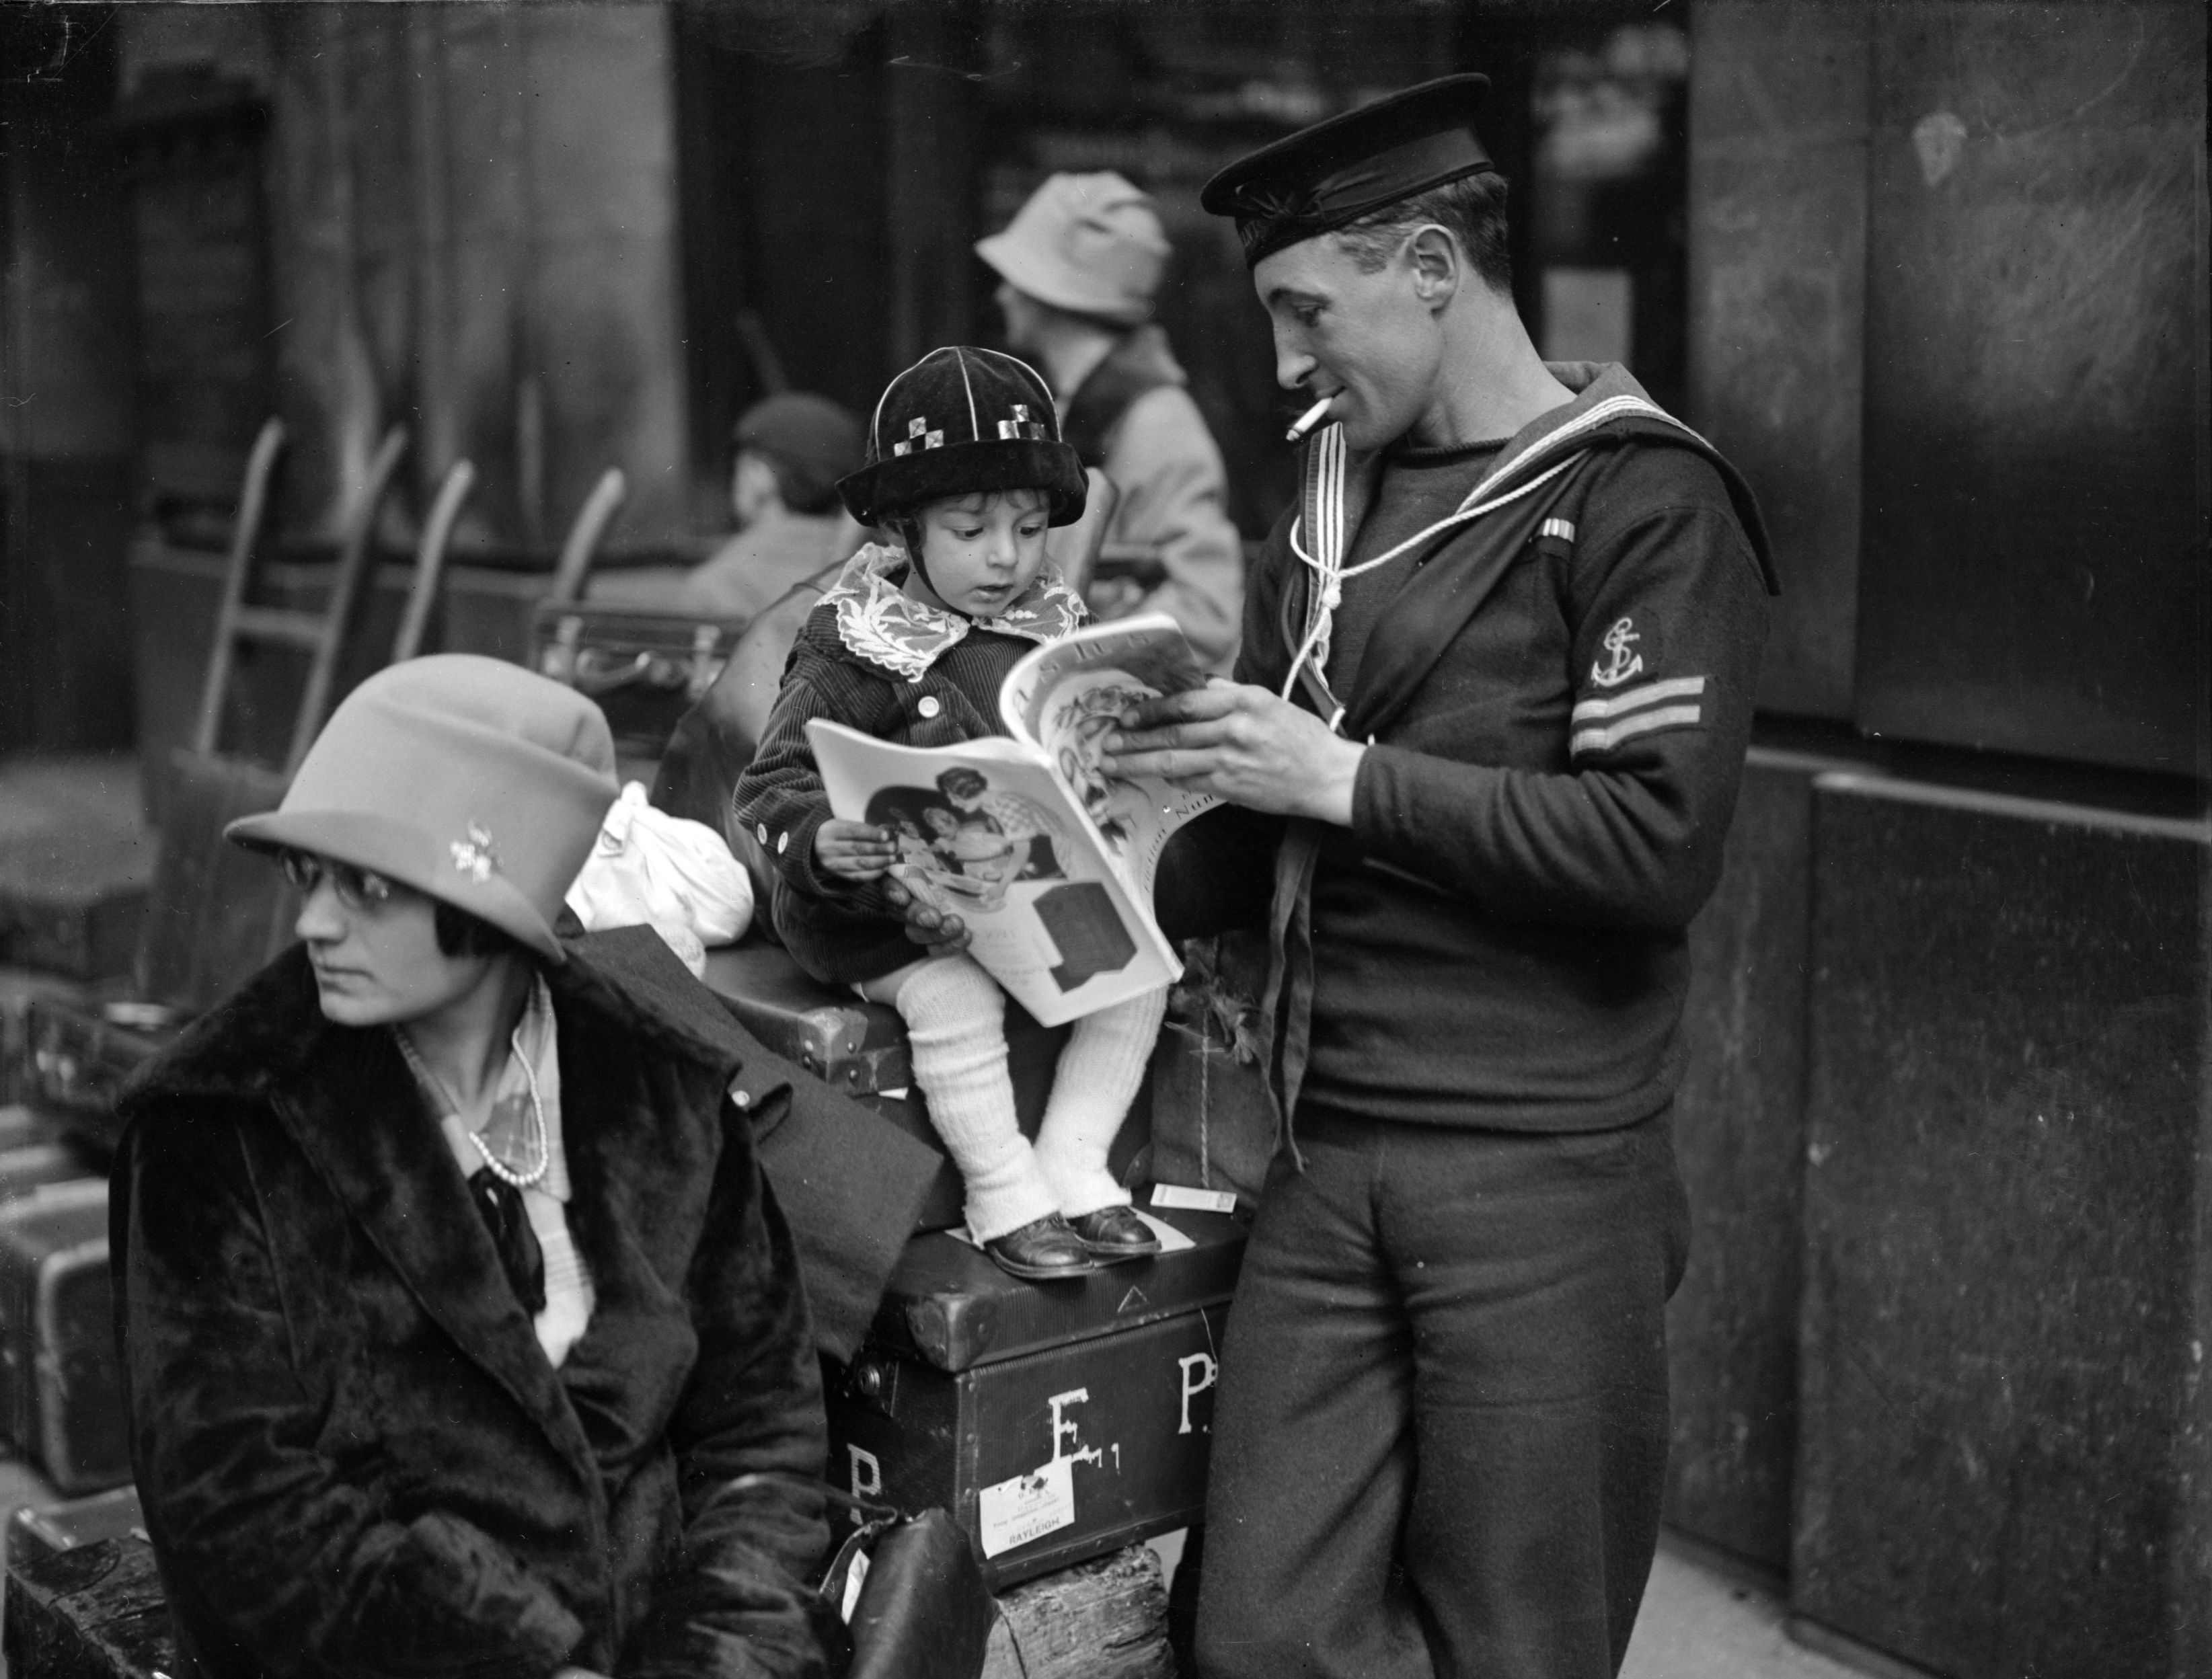 A sailor reads with his child as he waits for a holiday train at Waterloo station in London in 1927.